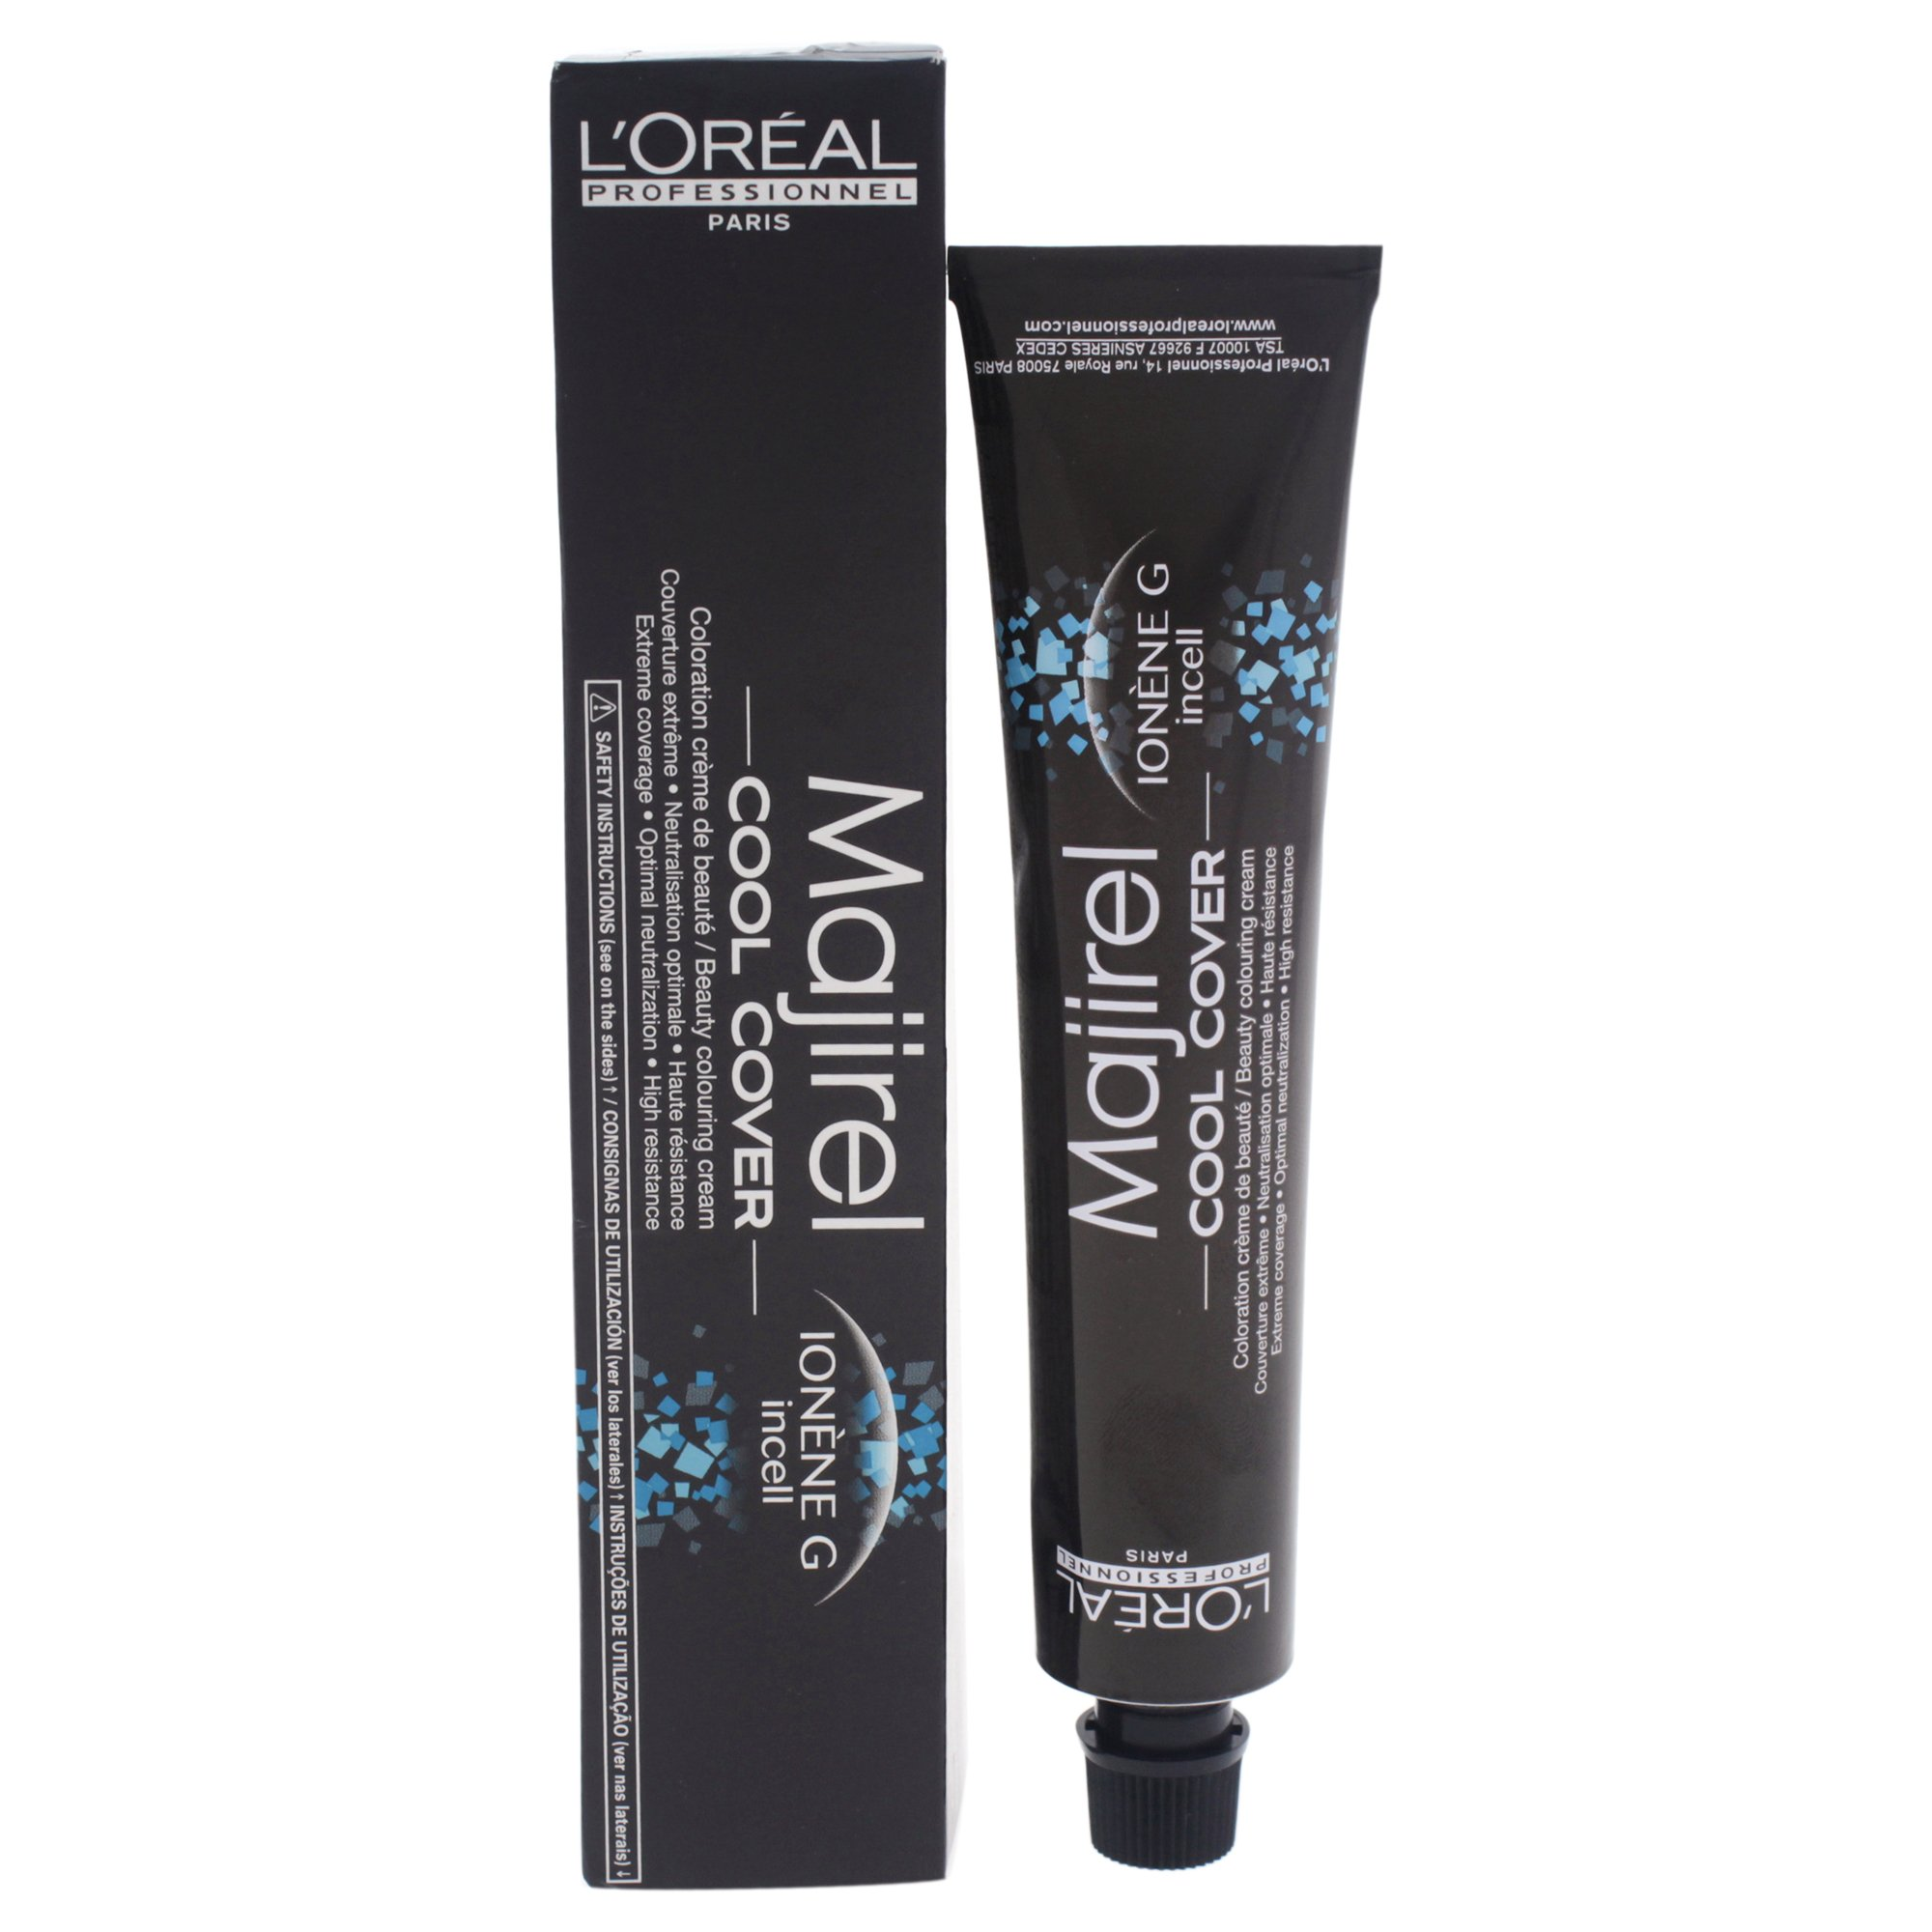 L'Oreal Professional Majirel Cool Cover Hair Color, No.8.3 Light Beige Golden Blonde, 1.7 Ounce